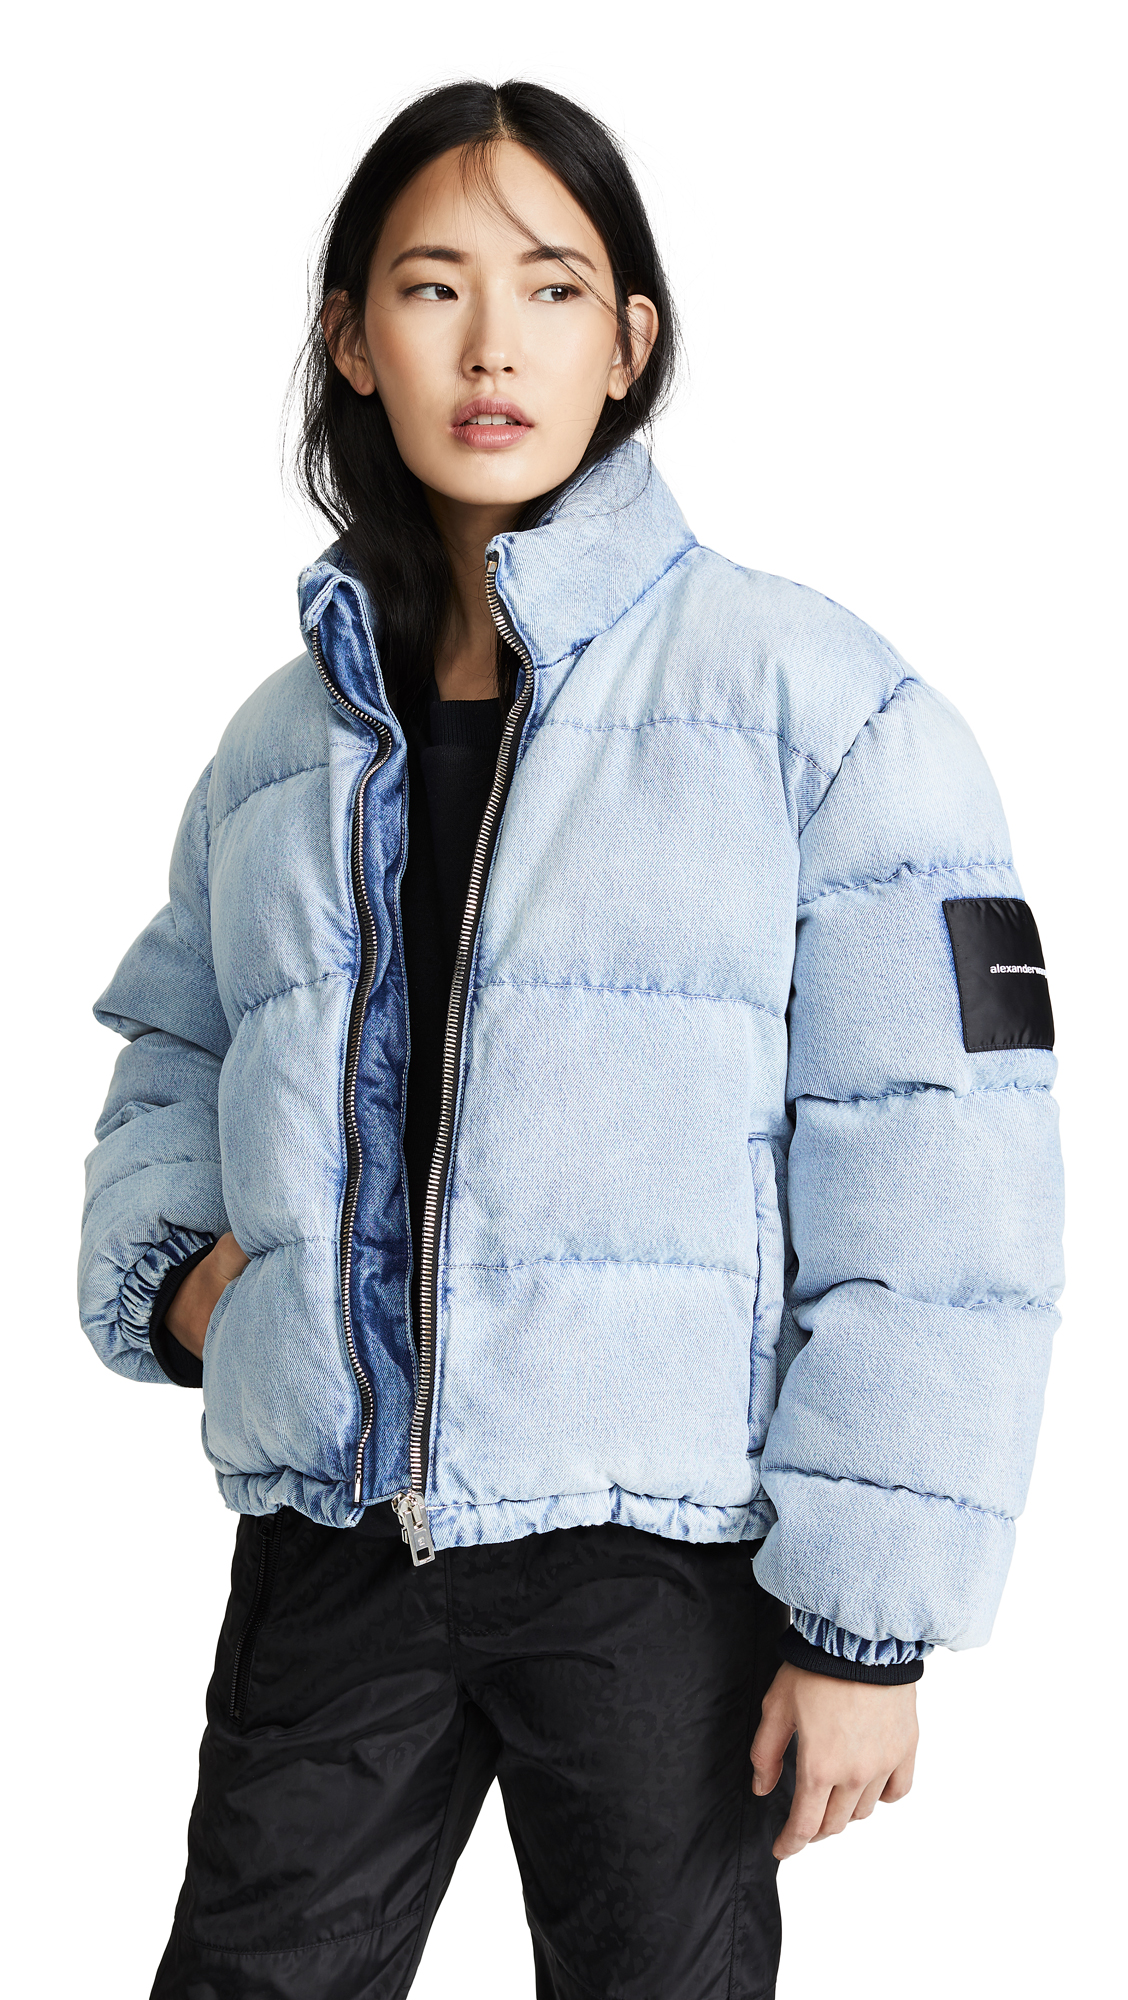 Denim x Alexander Wang Puffer Jacket - Bleach